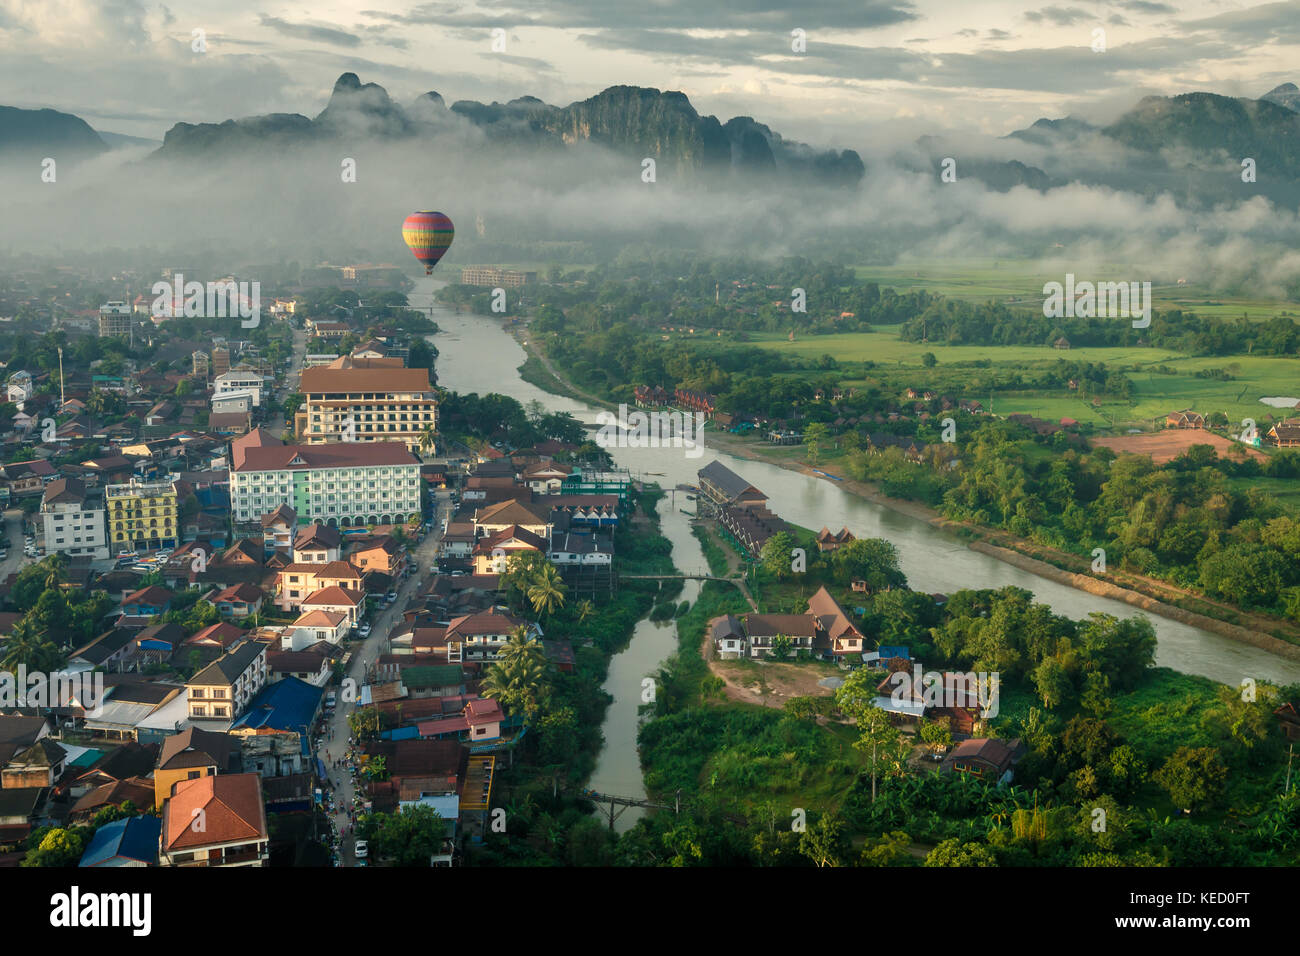 Morning view of Vang Vieng, Northern Laos. - Stock Image